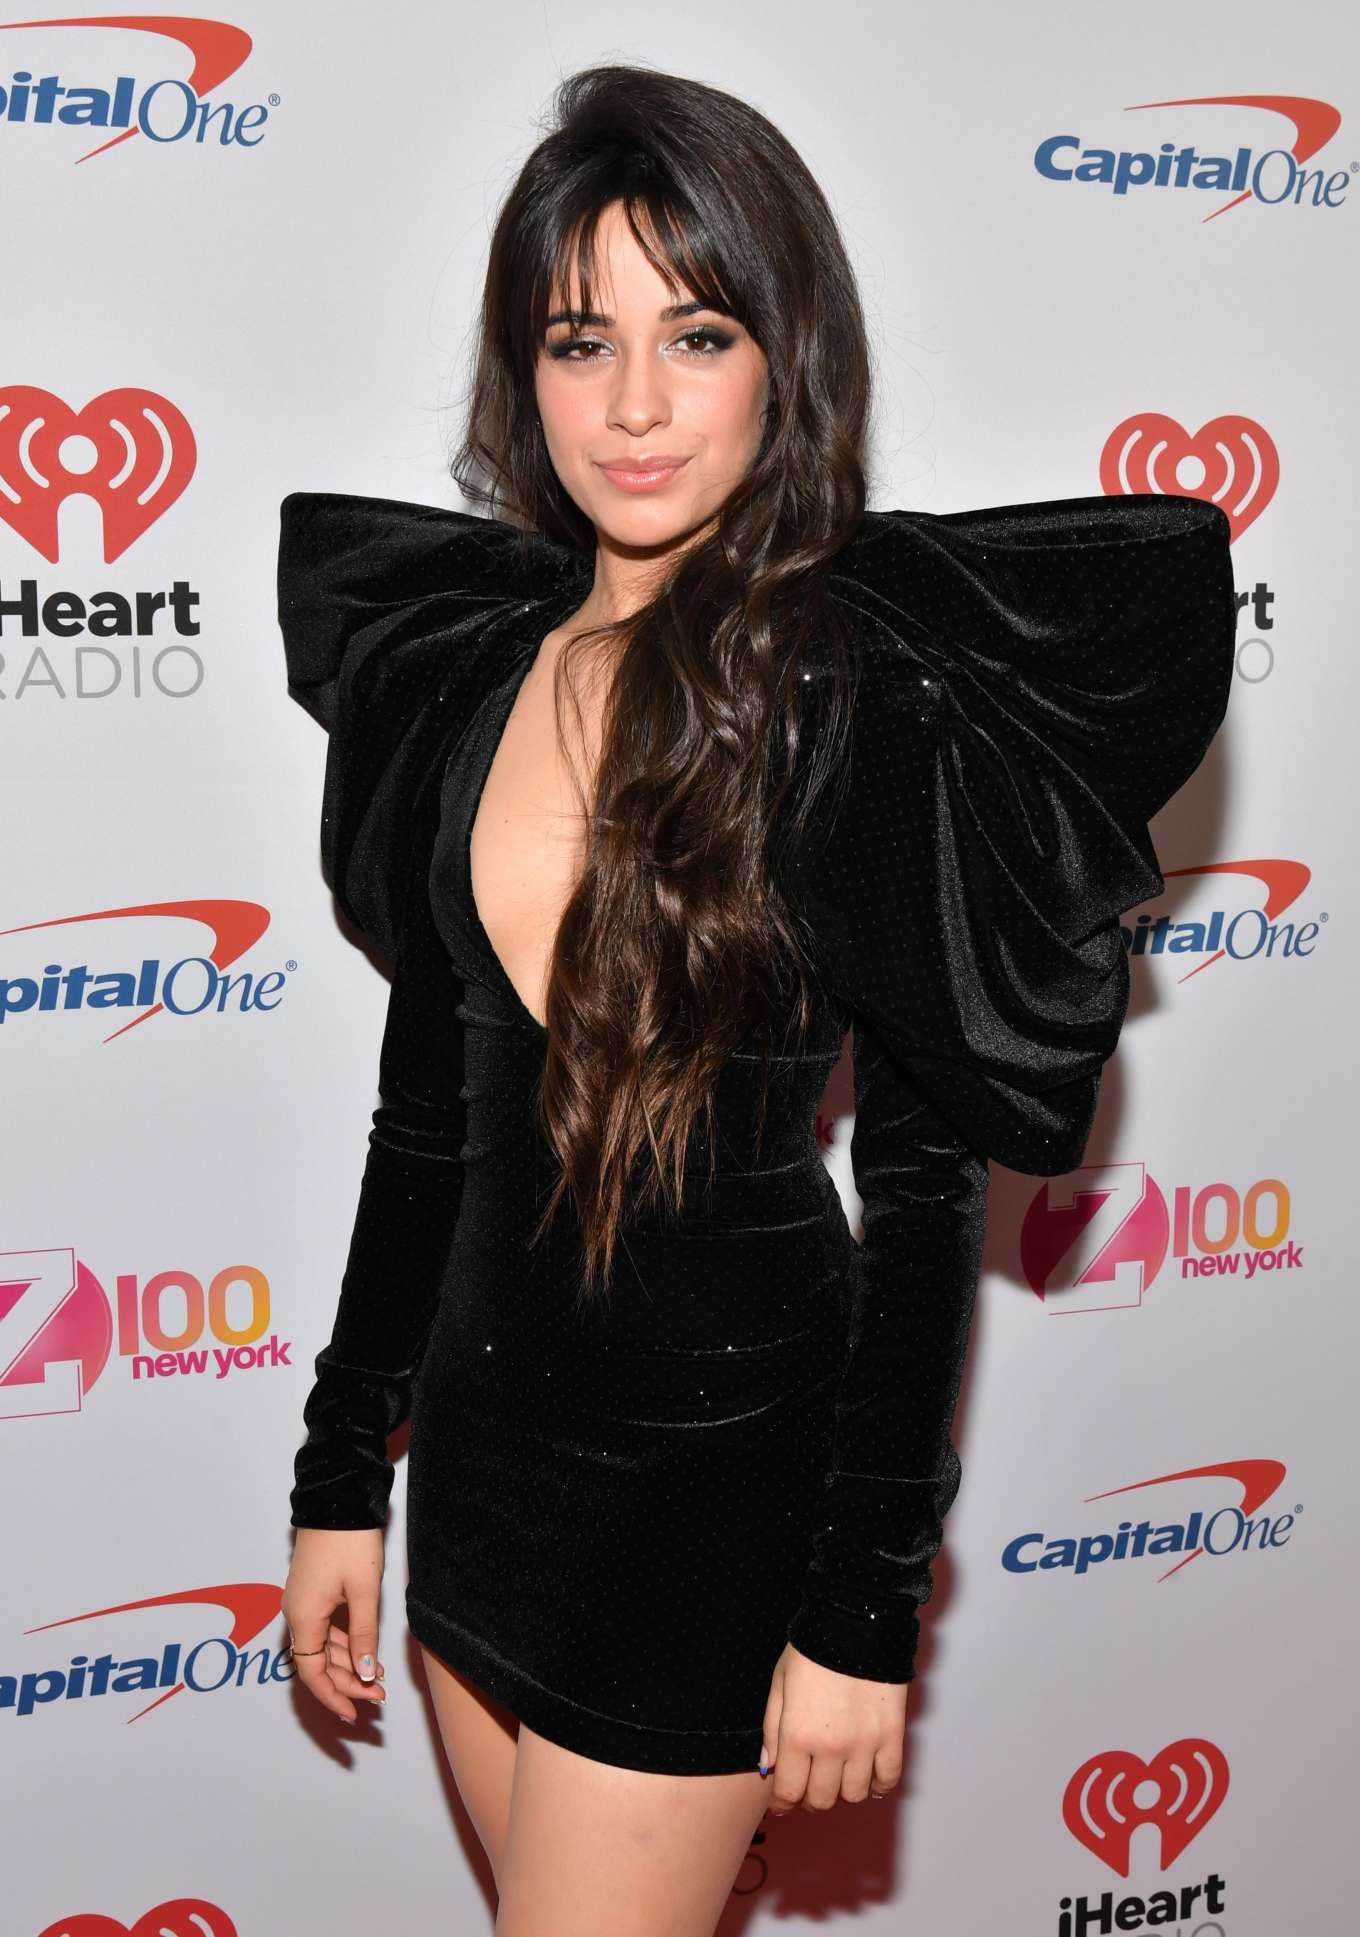 Camila Cabello - iHeartRadio's Z100 Jingle Ball 2019 in New York